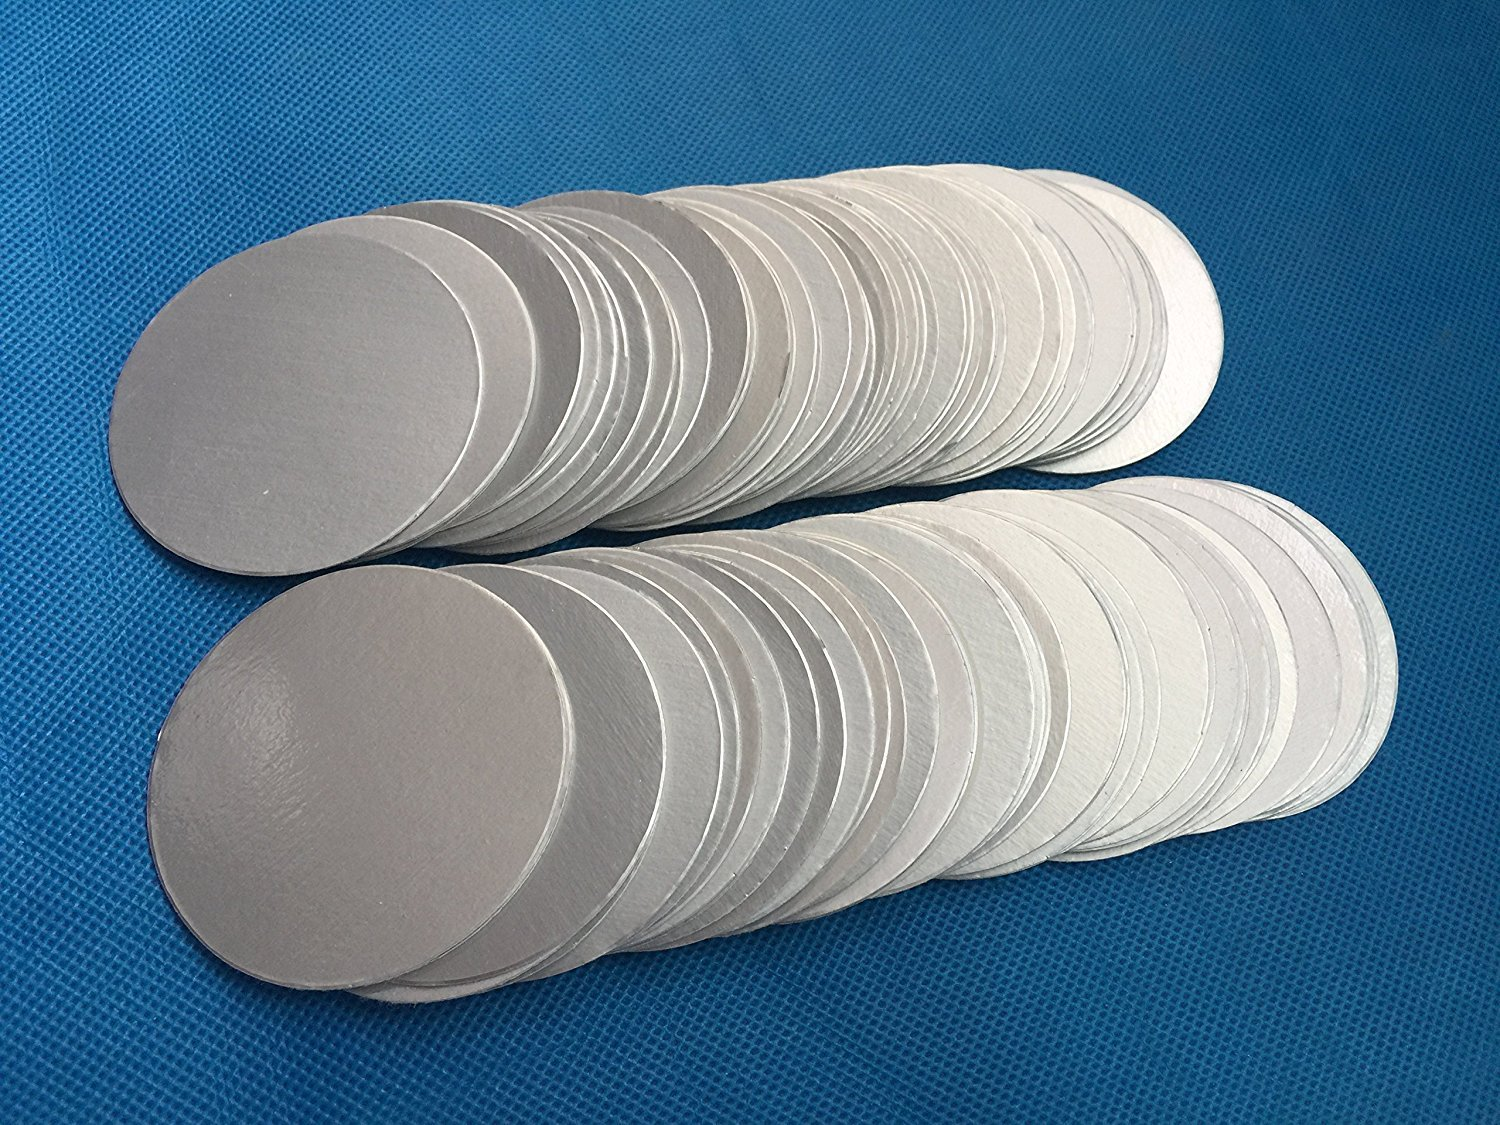 HDPE bottle cap 87mm plactic laminated aluminum foil lid liners (5000pcs)